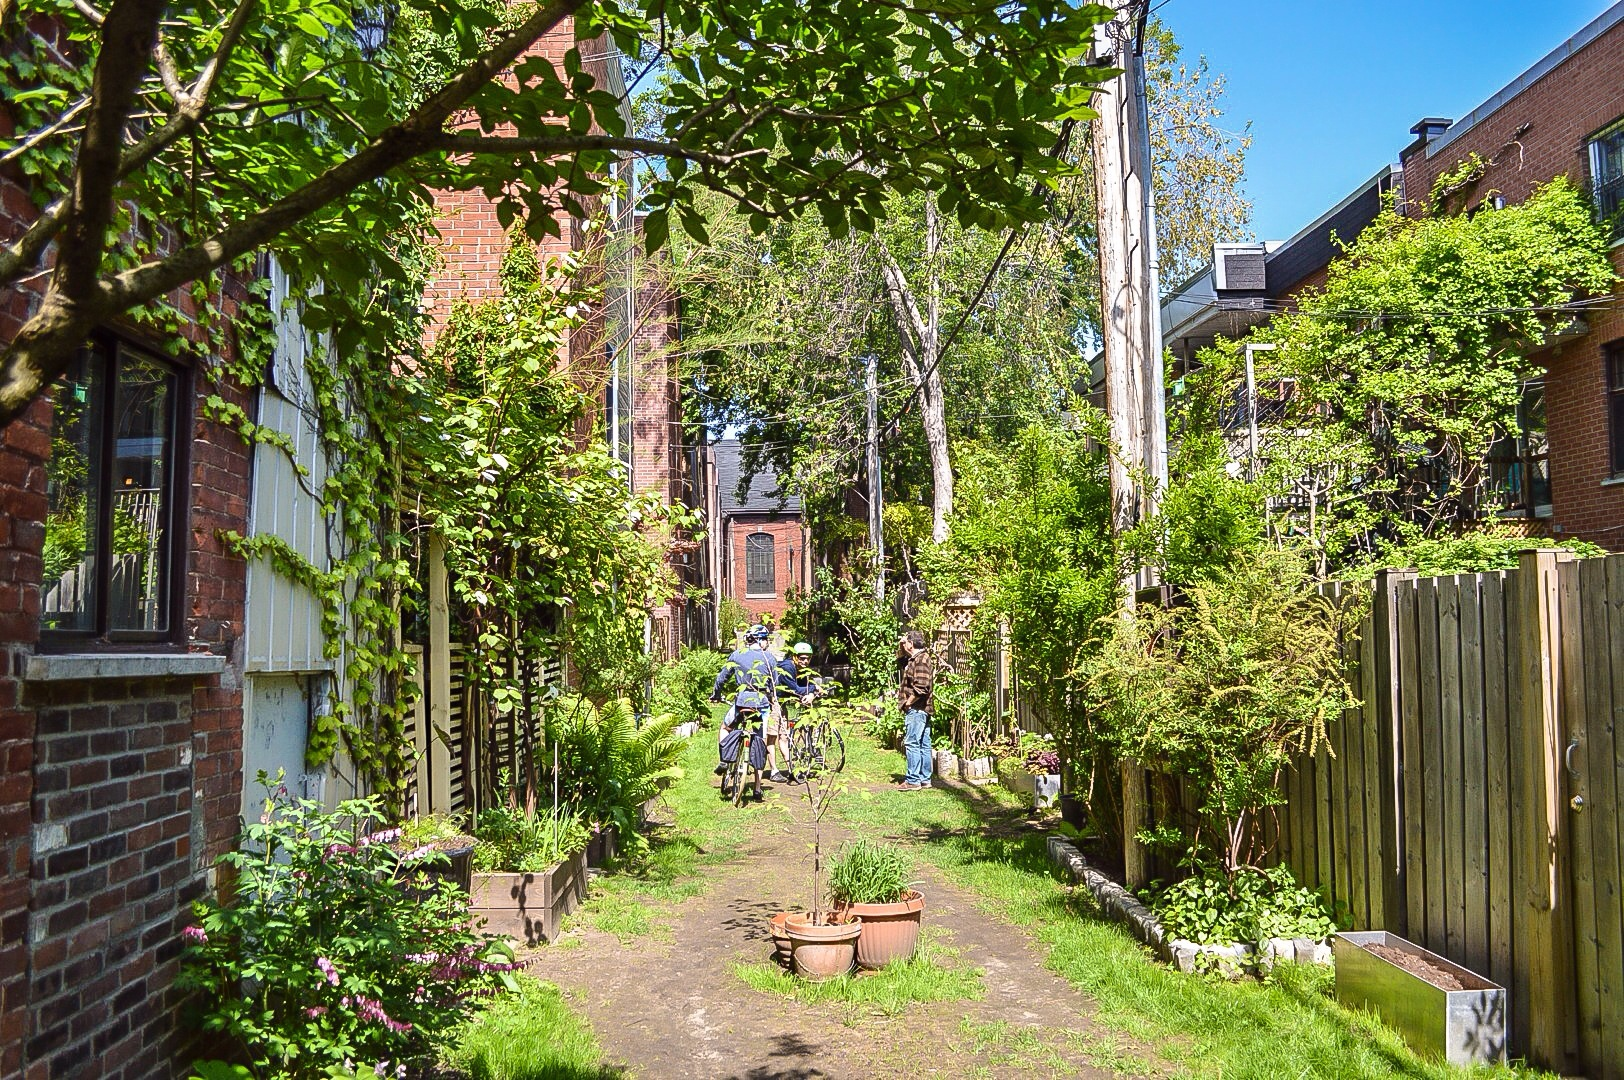 One of the Plateau's many beautiful Green Laneways.